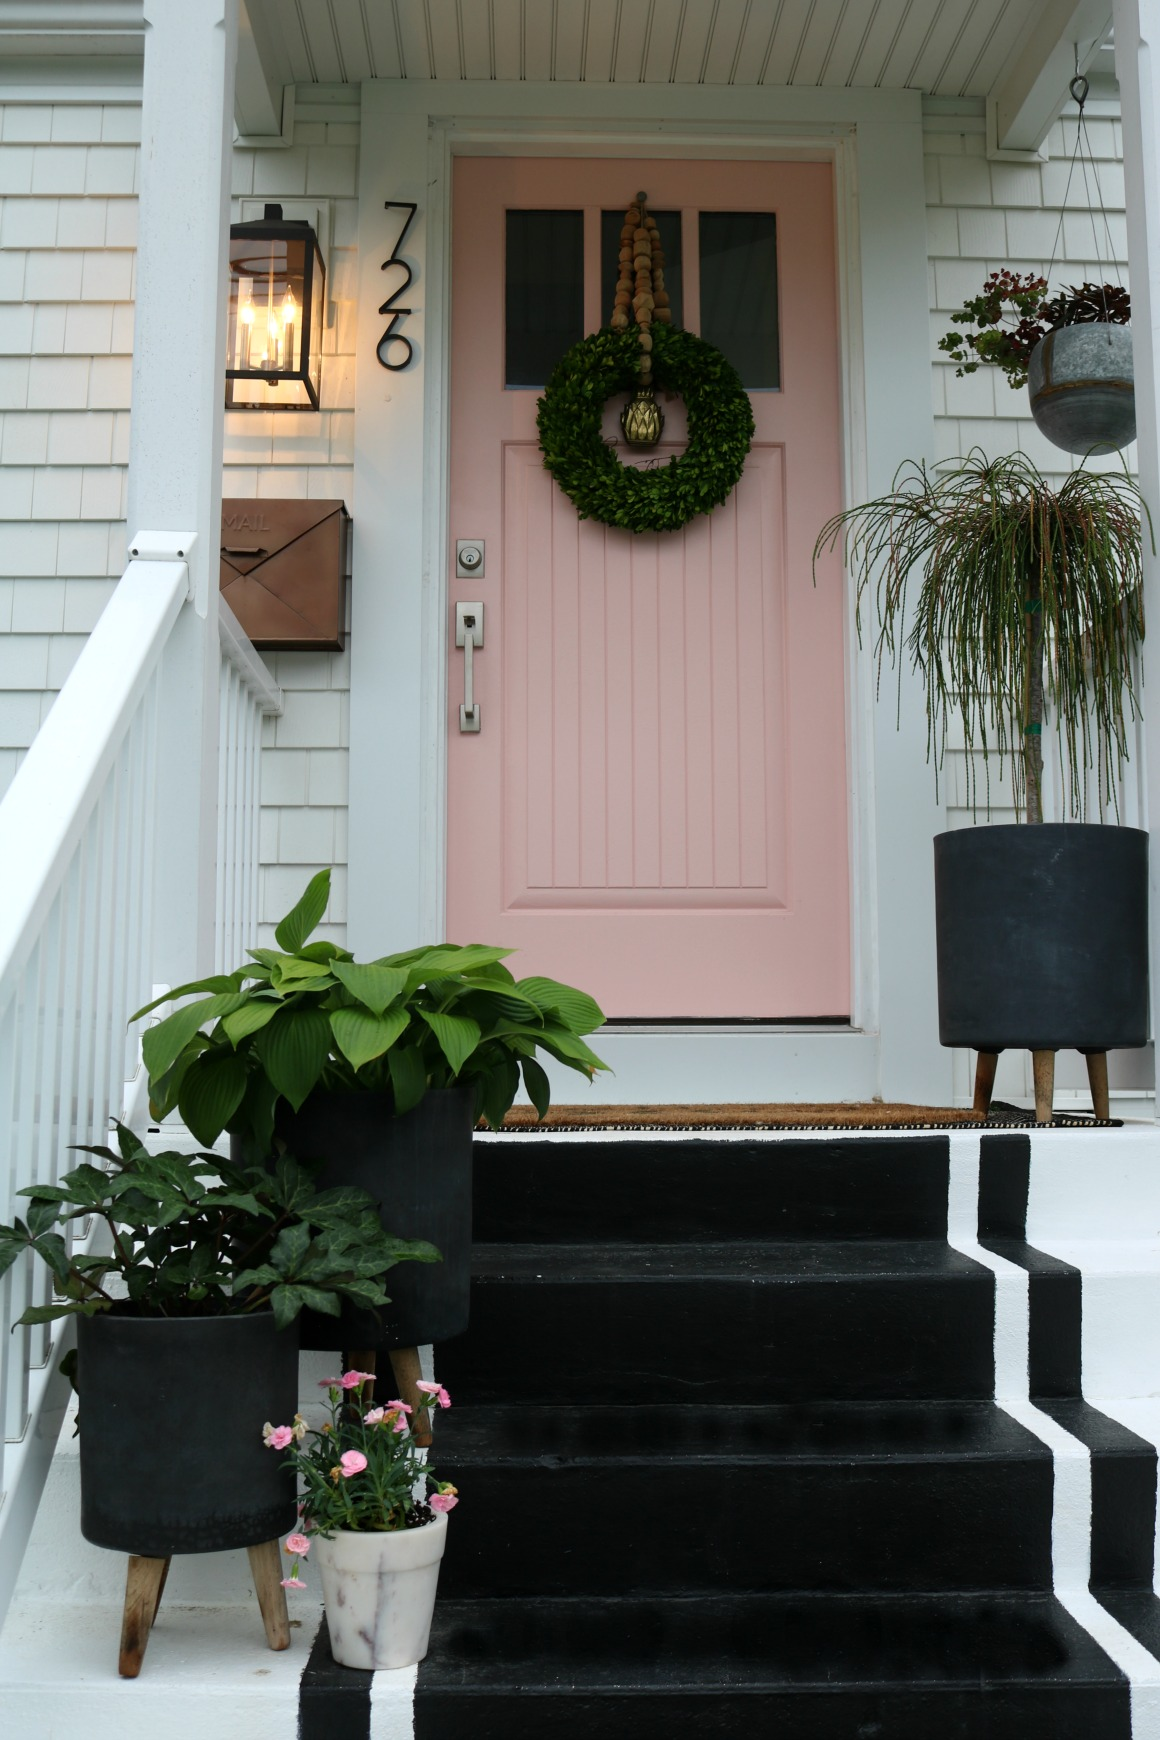 Add some Curb Appeal with Window Boxes